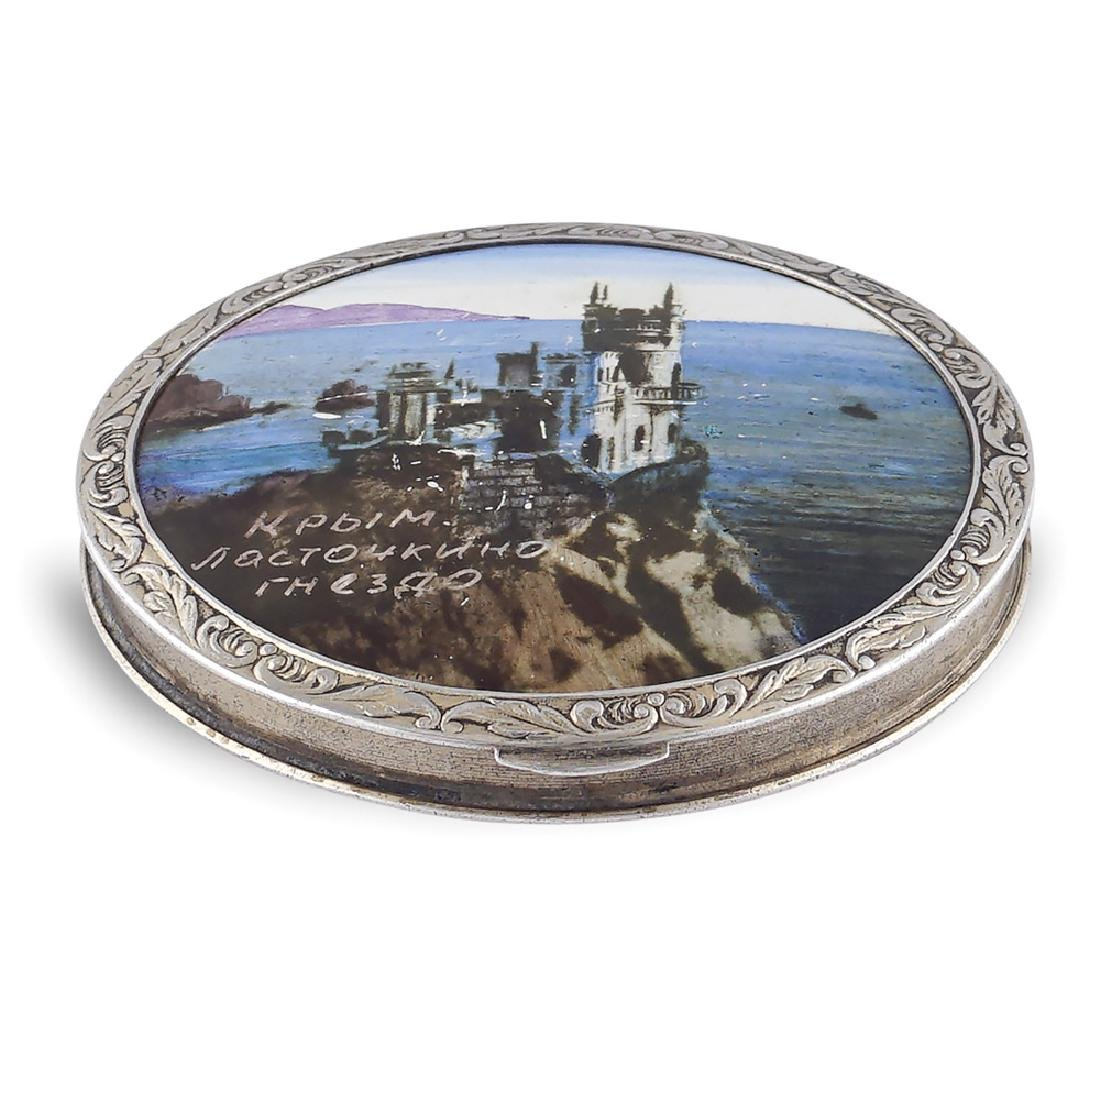 Silver and polychrome enamel compact powder Russia,